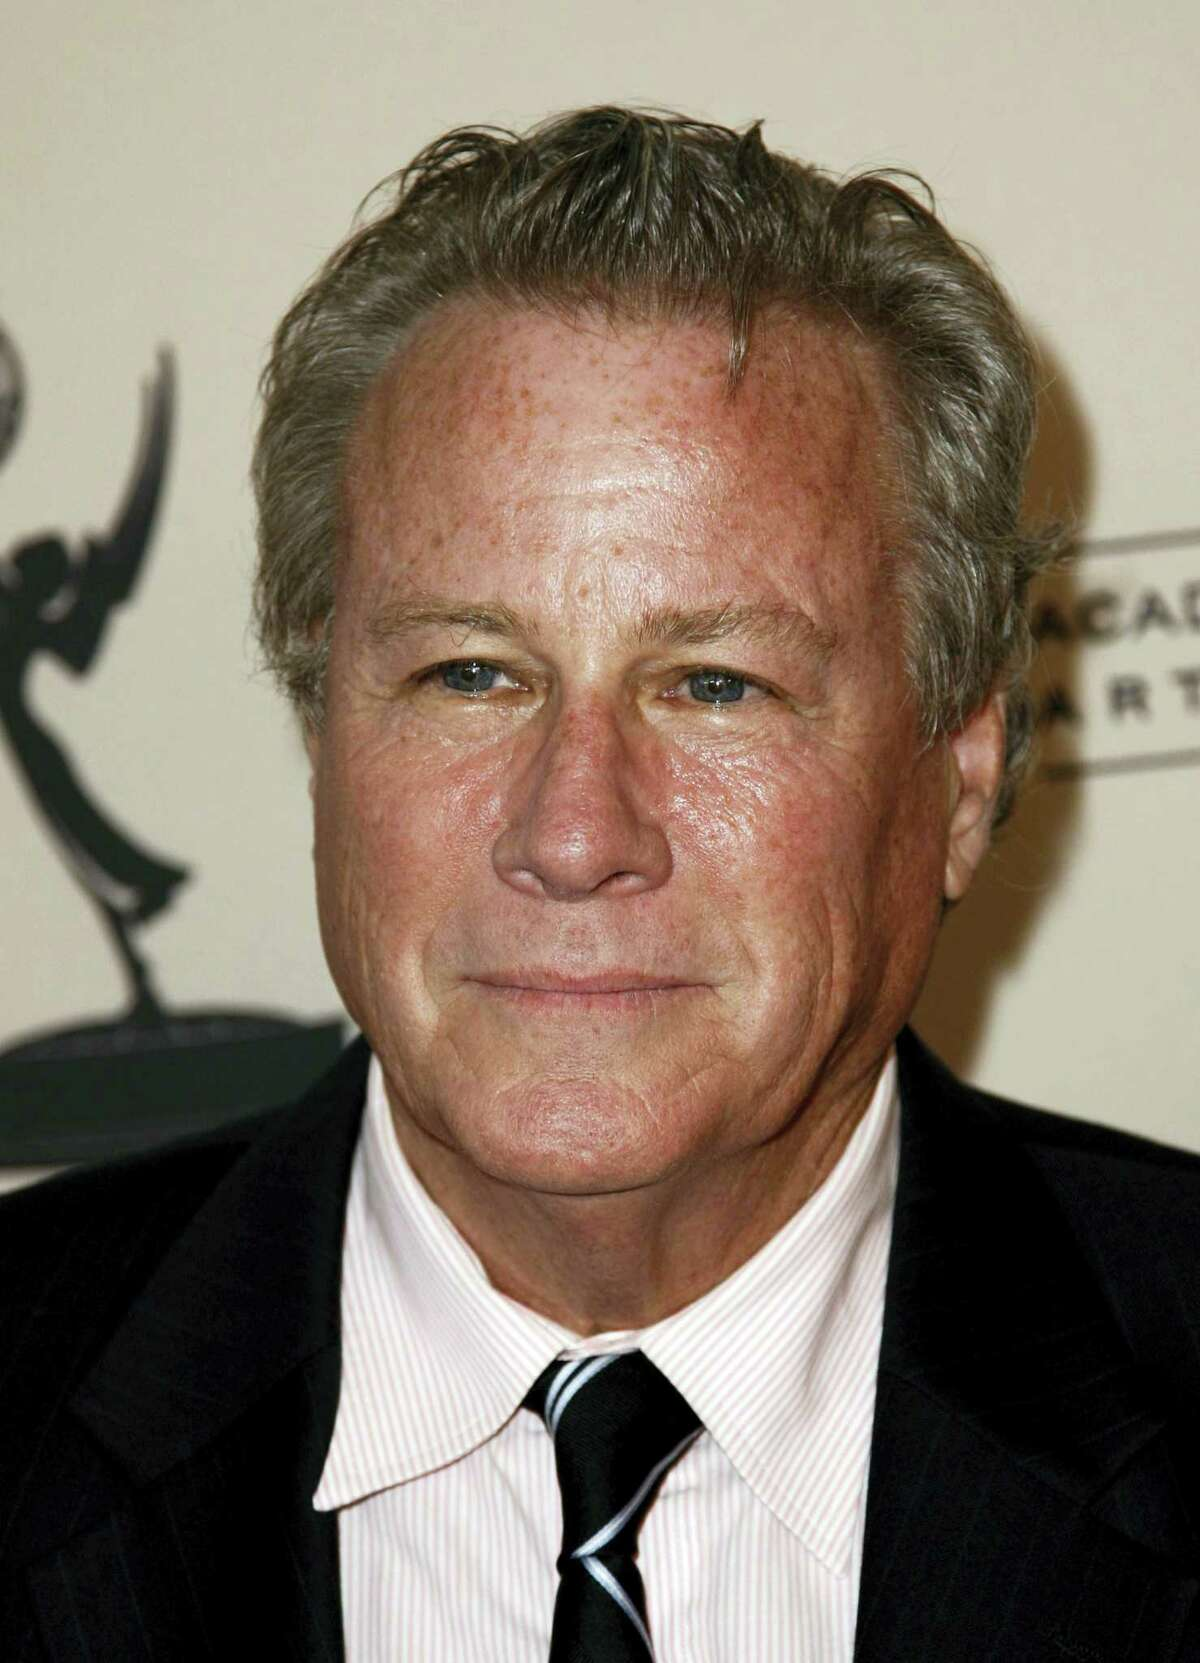 In this Sept. 12, 2011, file photo, actor John Heard arrives at Academy of Television Arts and Sciences Producers Peer Group celebration of the 63rd Primetime Emmy Awards in Los Angeles. Heard, best known for playing the father in the 'Home Alone' movie series, has died. He was 71. His death was confirmed by the Santa Clara Medical Examiner's Office in California on Saturday, July 22, 2017.